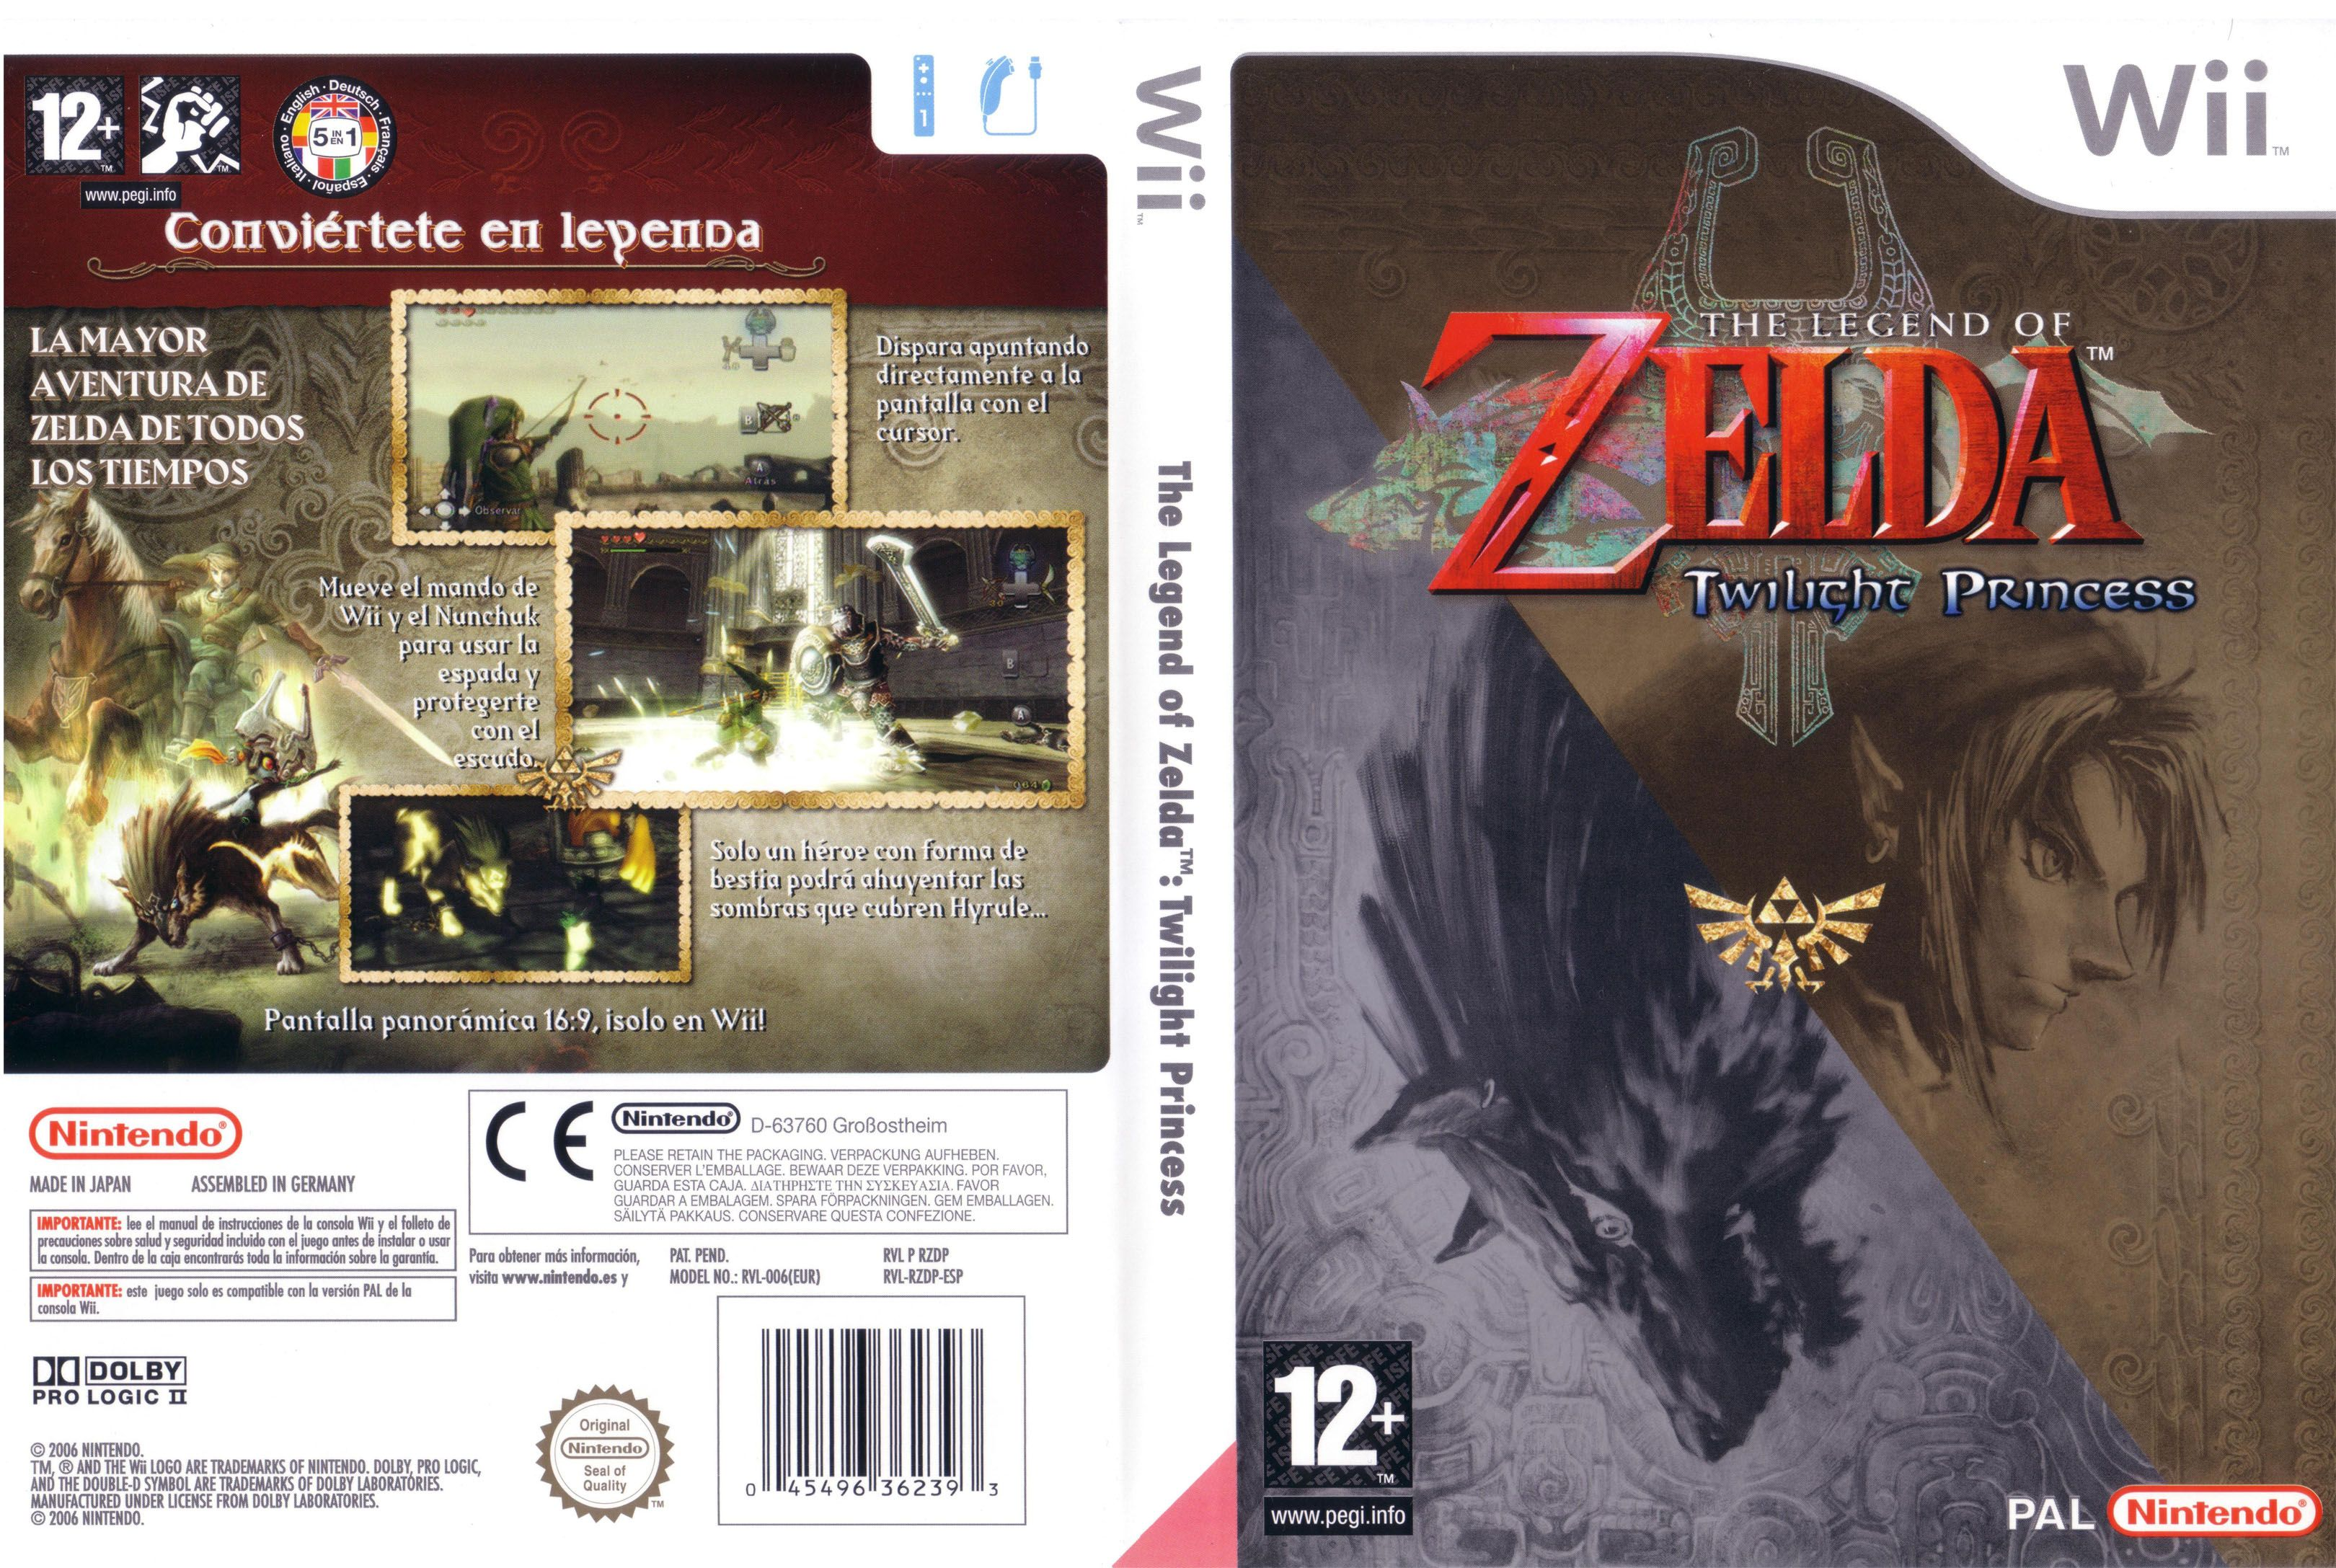 The_Legend_Of_Zelda_-_Twilight_Princess-DVD-WII.jpg